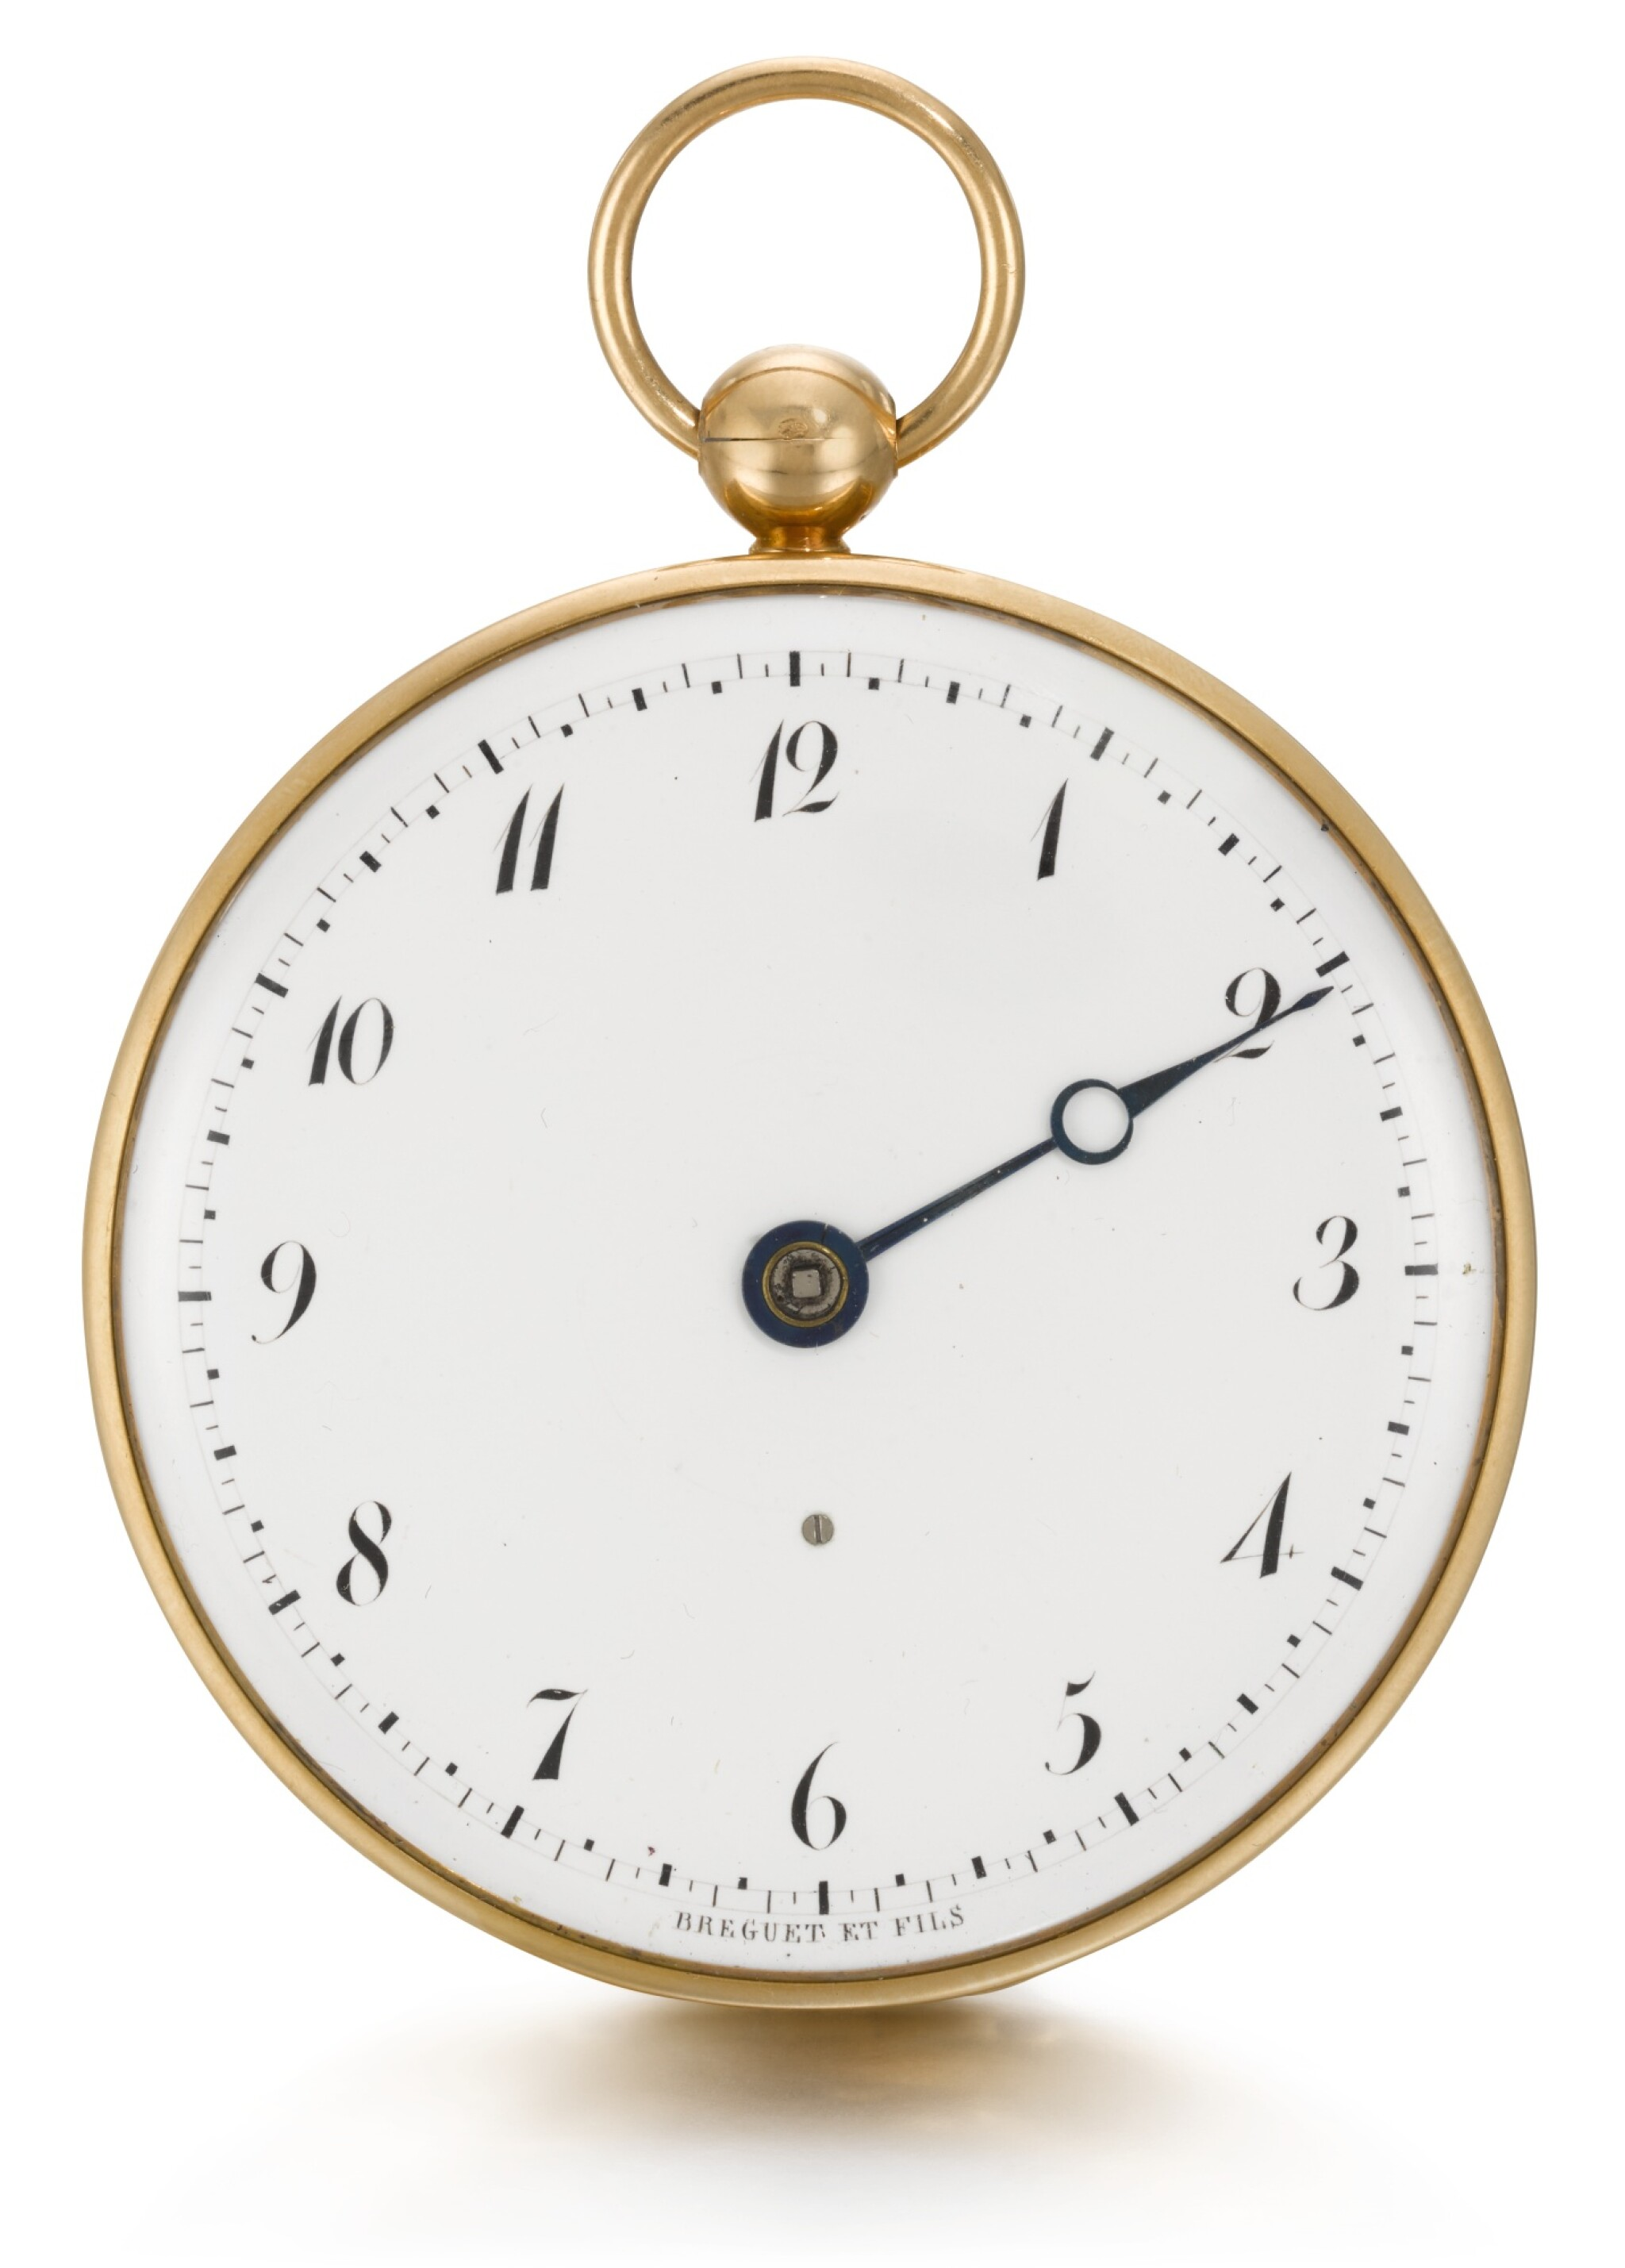 BREGUET ET FILS  [ 寶璣]  | A LARGE GOLD RUBY CYLINDER SINGLE HANDED WATCH   NO. 3337, 'MONTRE DE SOUSCRIPTION' SOLD TO MONSIEUR CALISTE CASSON ON 2 JULY 1819 FOR 888 FRANCS  [ 大型黃金單指針懷錶備紅寶石工字輪擒縱機芯,編號3337,1819年7月2日以888法郎售出]